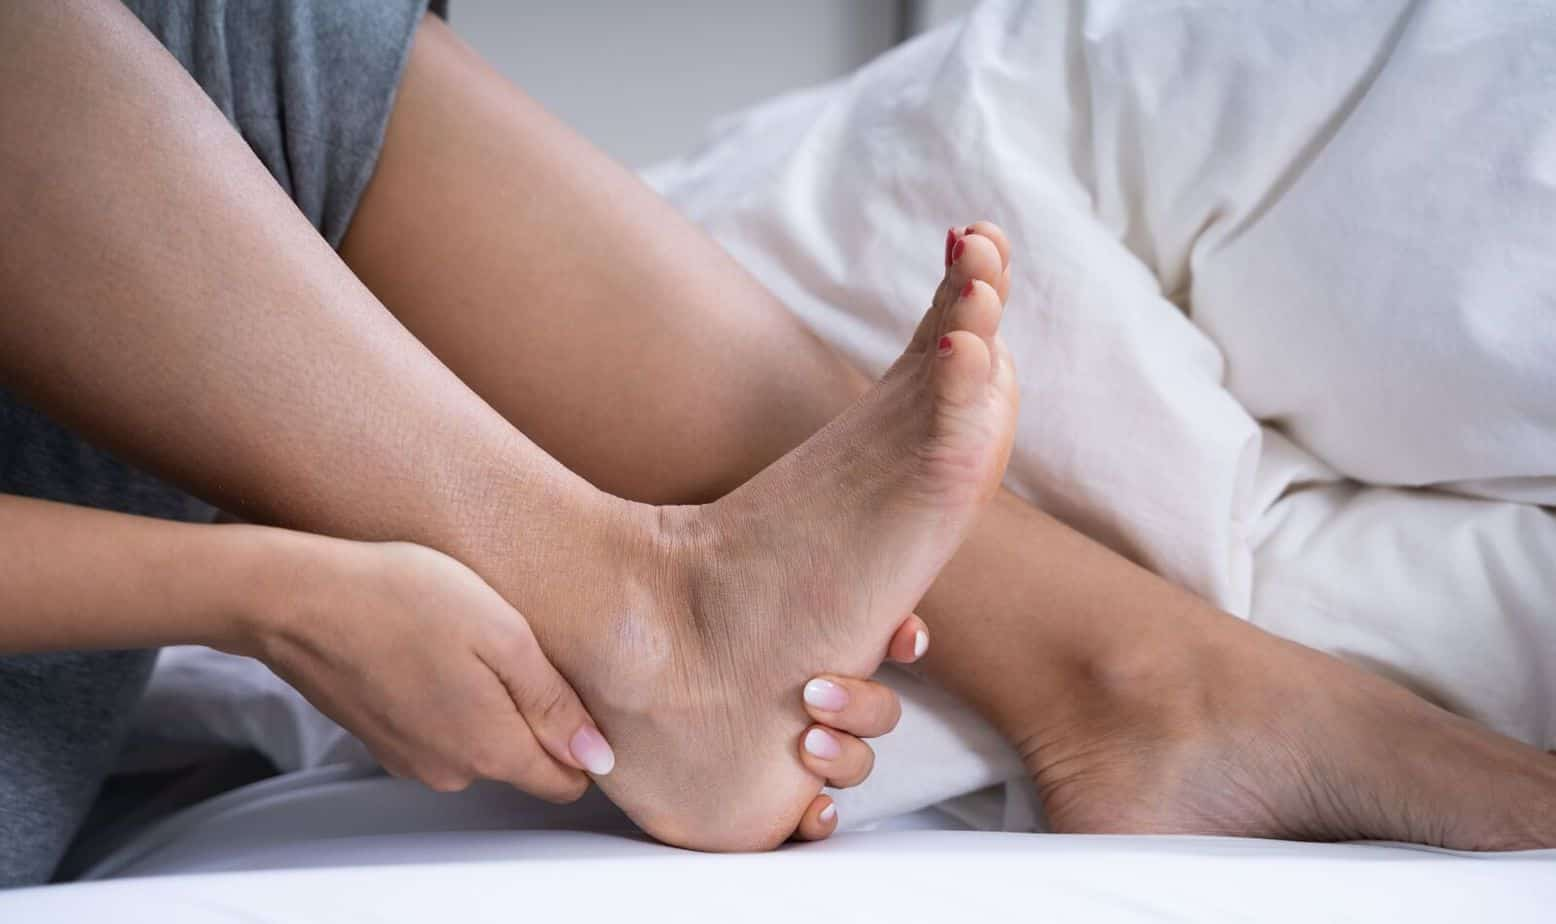 Woman Feeling Achilles Heel Pain in her aging feet